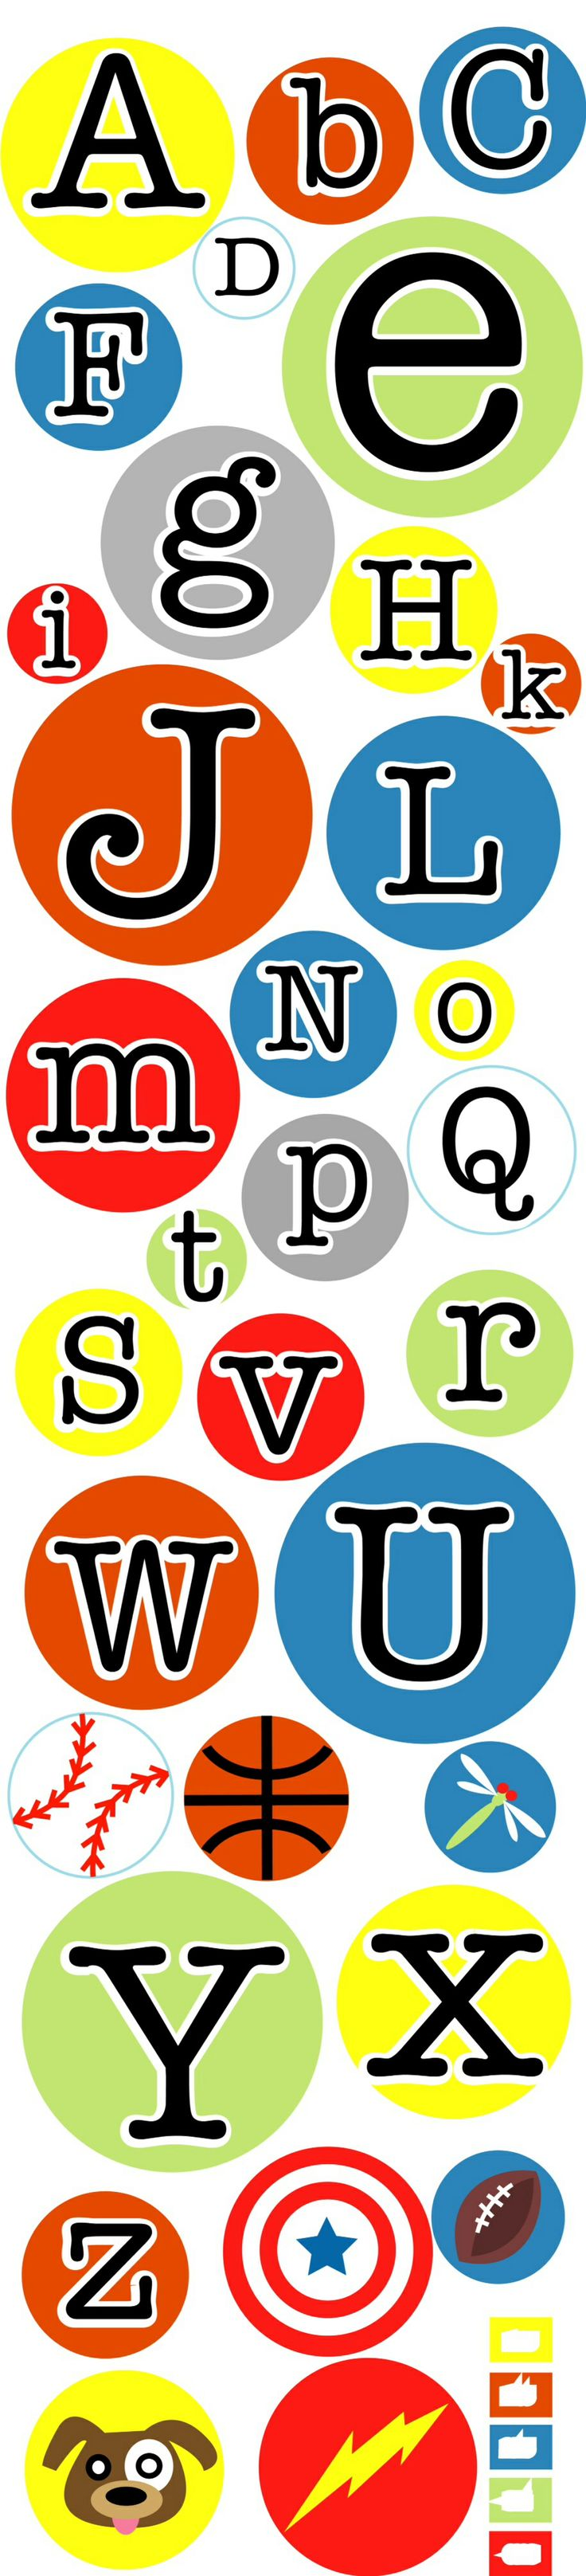 "Fun alphabet decals available at www.etsy.com/shop/AnitaRoll. The circles are 6, 10, 14 and 18"" in diameter. Printed on repositionable fabric. Great for playrooms and bedrooms scattered around the room in a loose border.  Other pictures can be used in place of the sport themes."